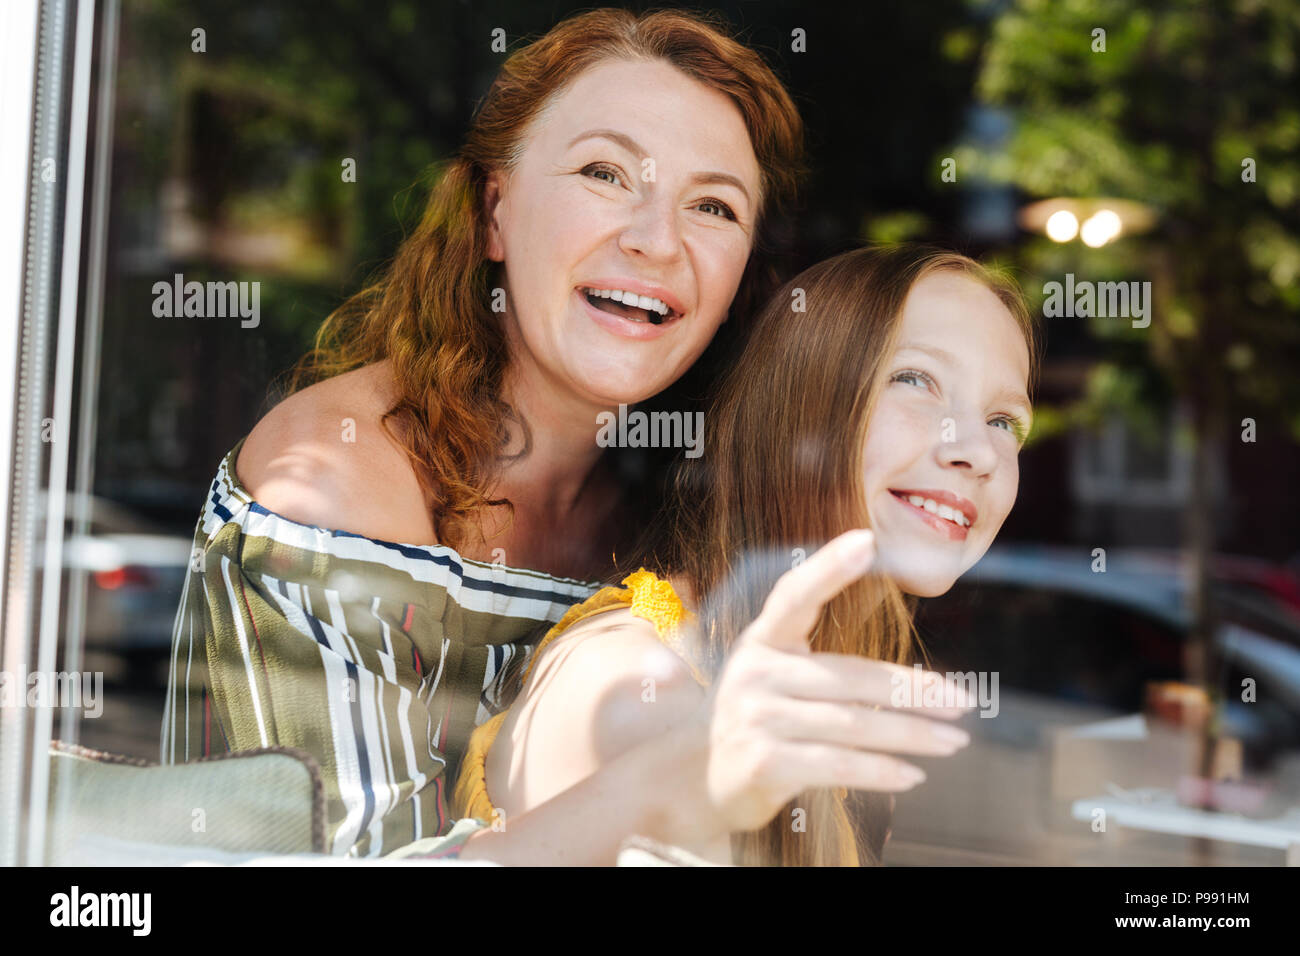 Caring beaming mother hugging her appealing daughter - Stock Image